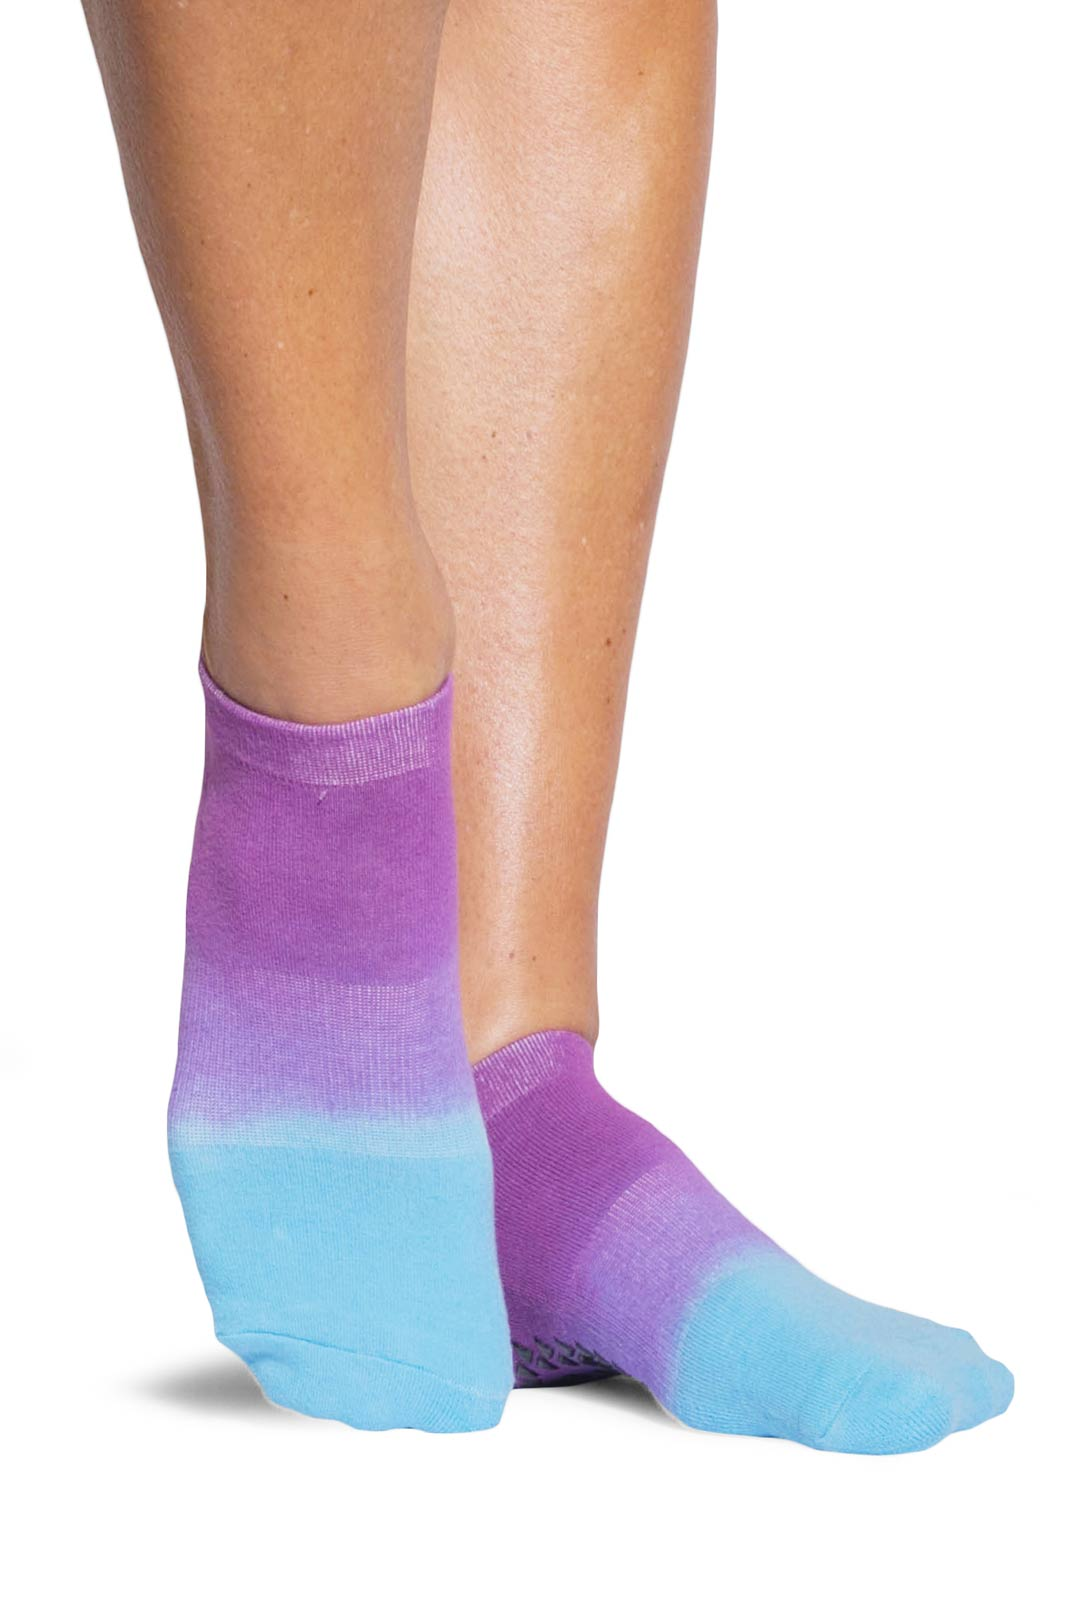 Pointe Studio Elle Grip Midweight - Pink/Blue image 2 - The Sports Edit